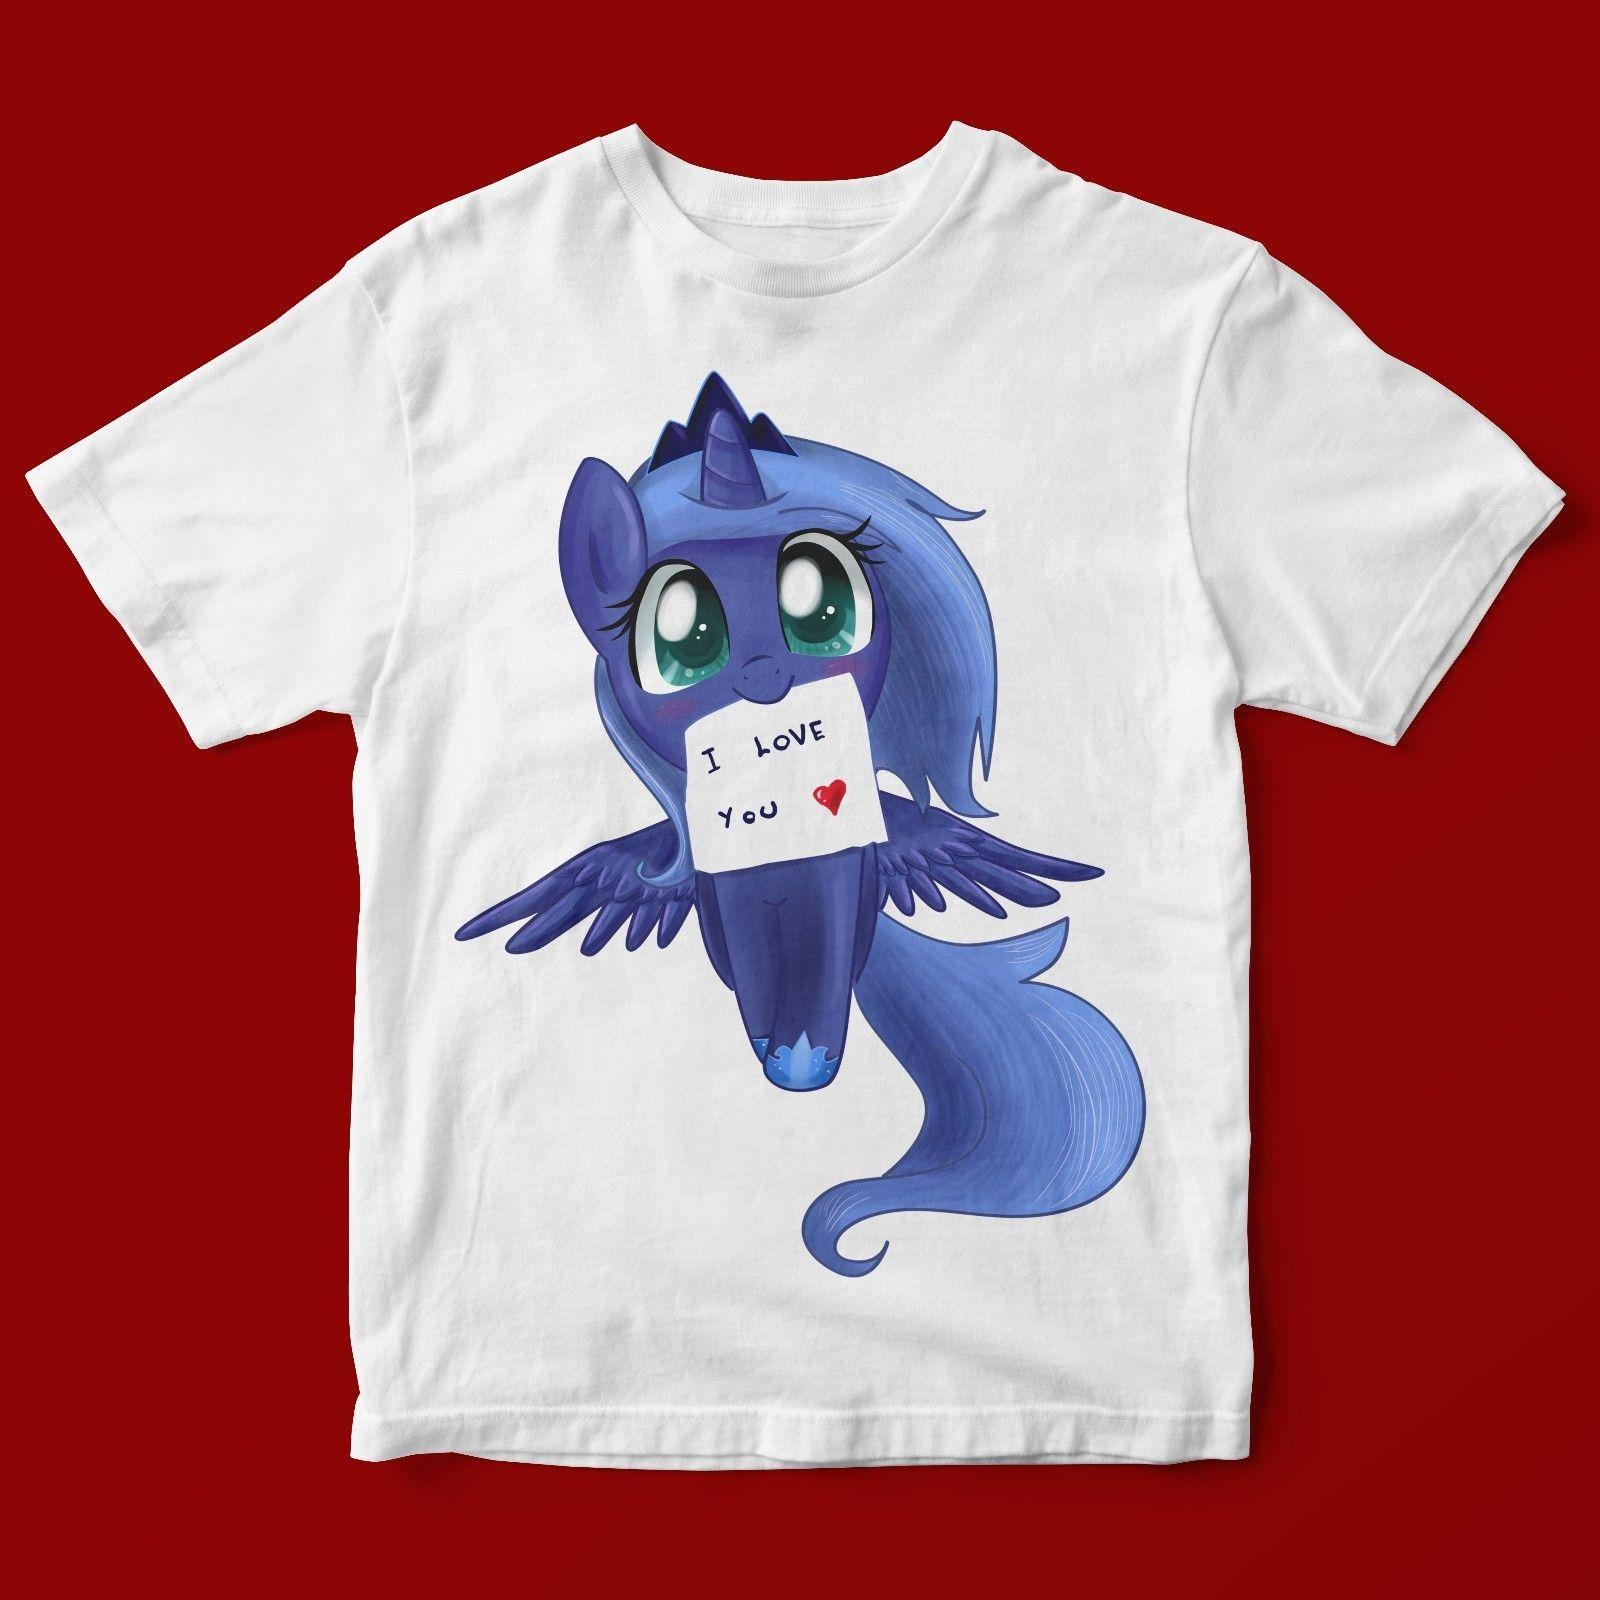 9f93e8ff0ad I LOVE YOU BLUE PONY T SHIRT UNISEX 791 Ladies T Shirts Shirts Design From  Valuebuy